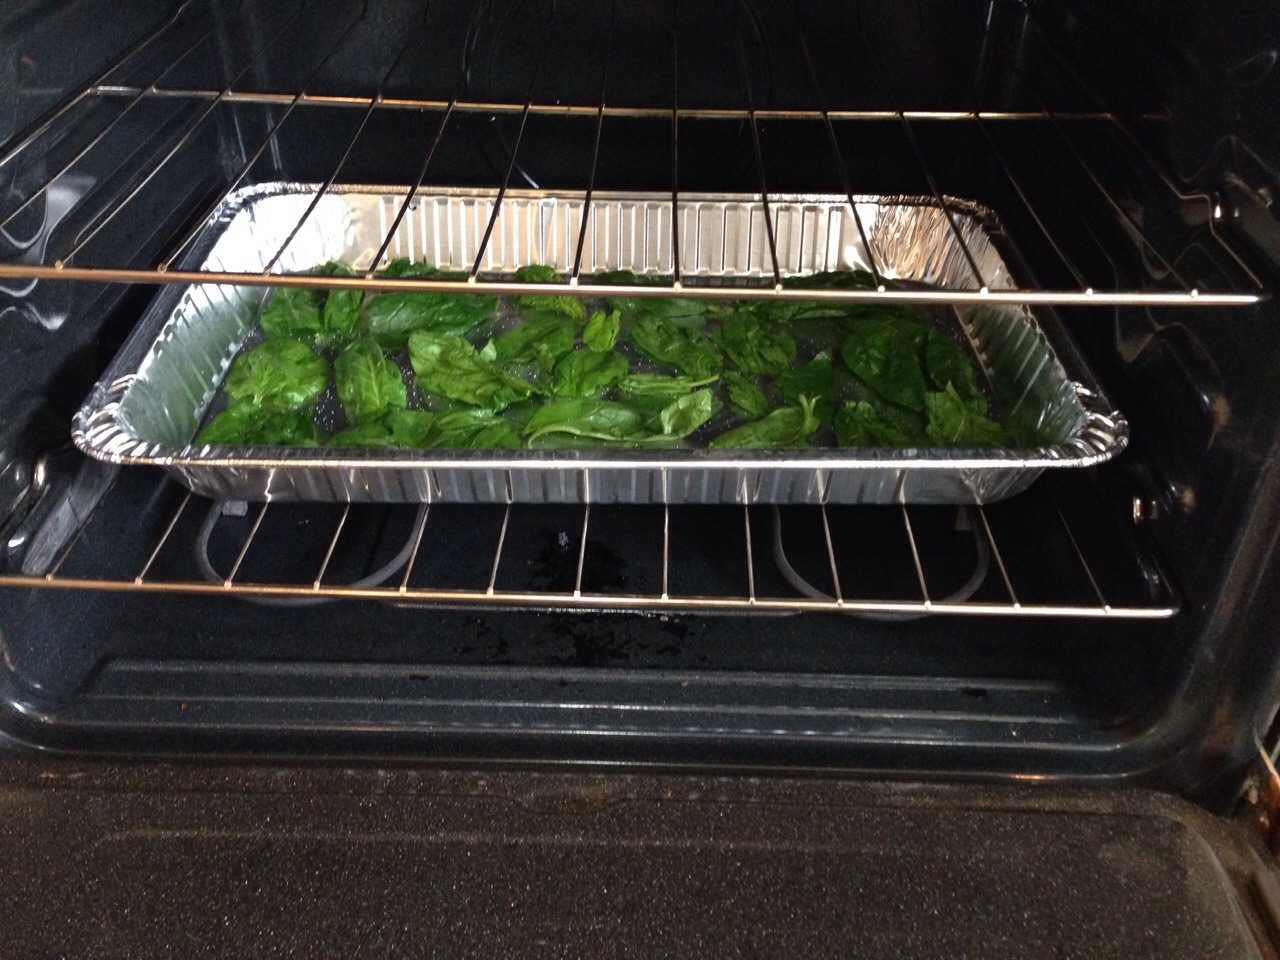 Bake spinach for 6-8 minutes. After 8 minutes watch super carefully